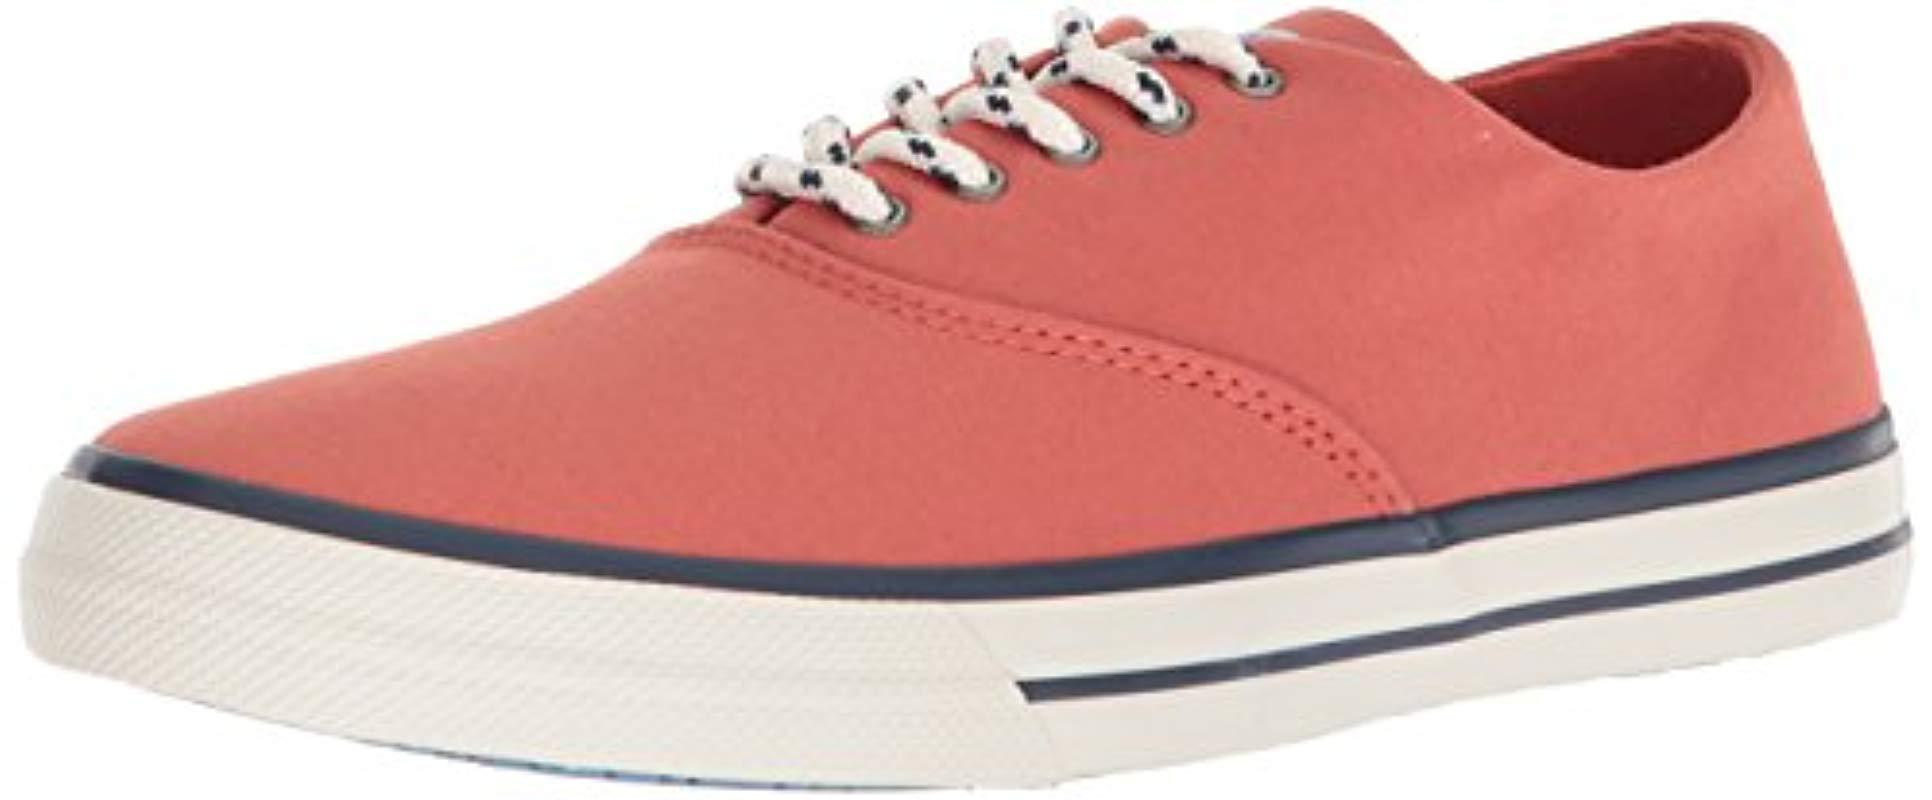 new product ffcac 3cfcc sperry-top-sider-Red-Captains-Cvo-Nautical-Sneaker.jpeg